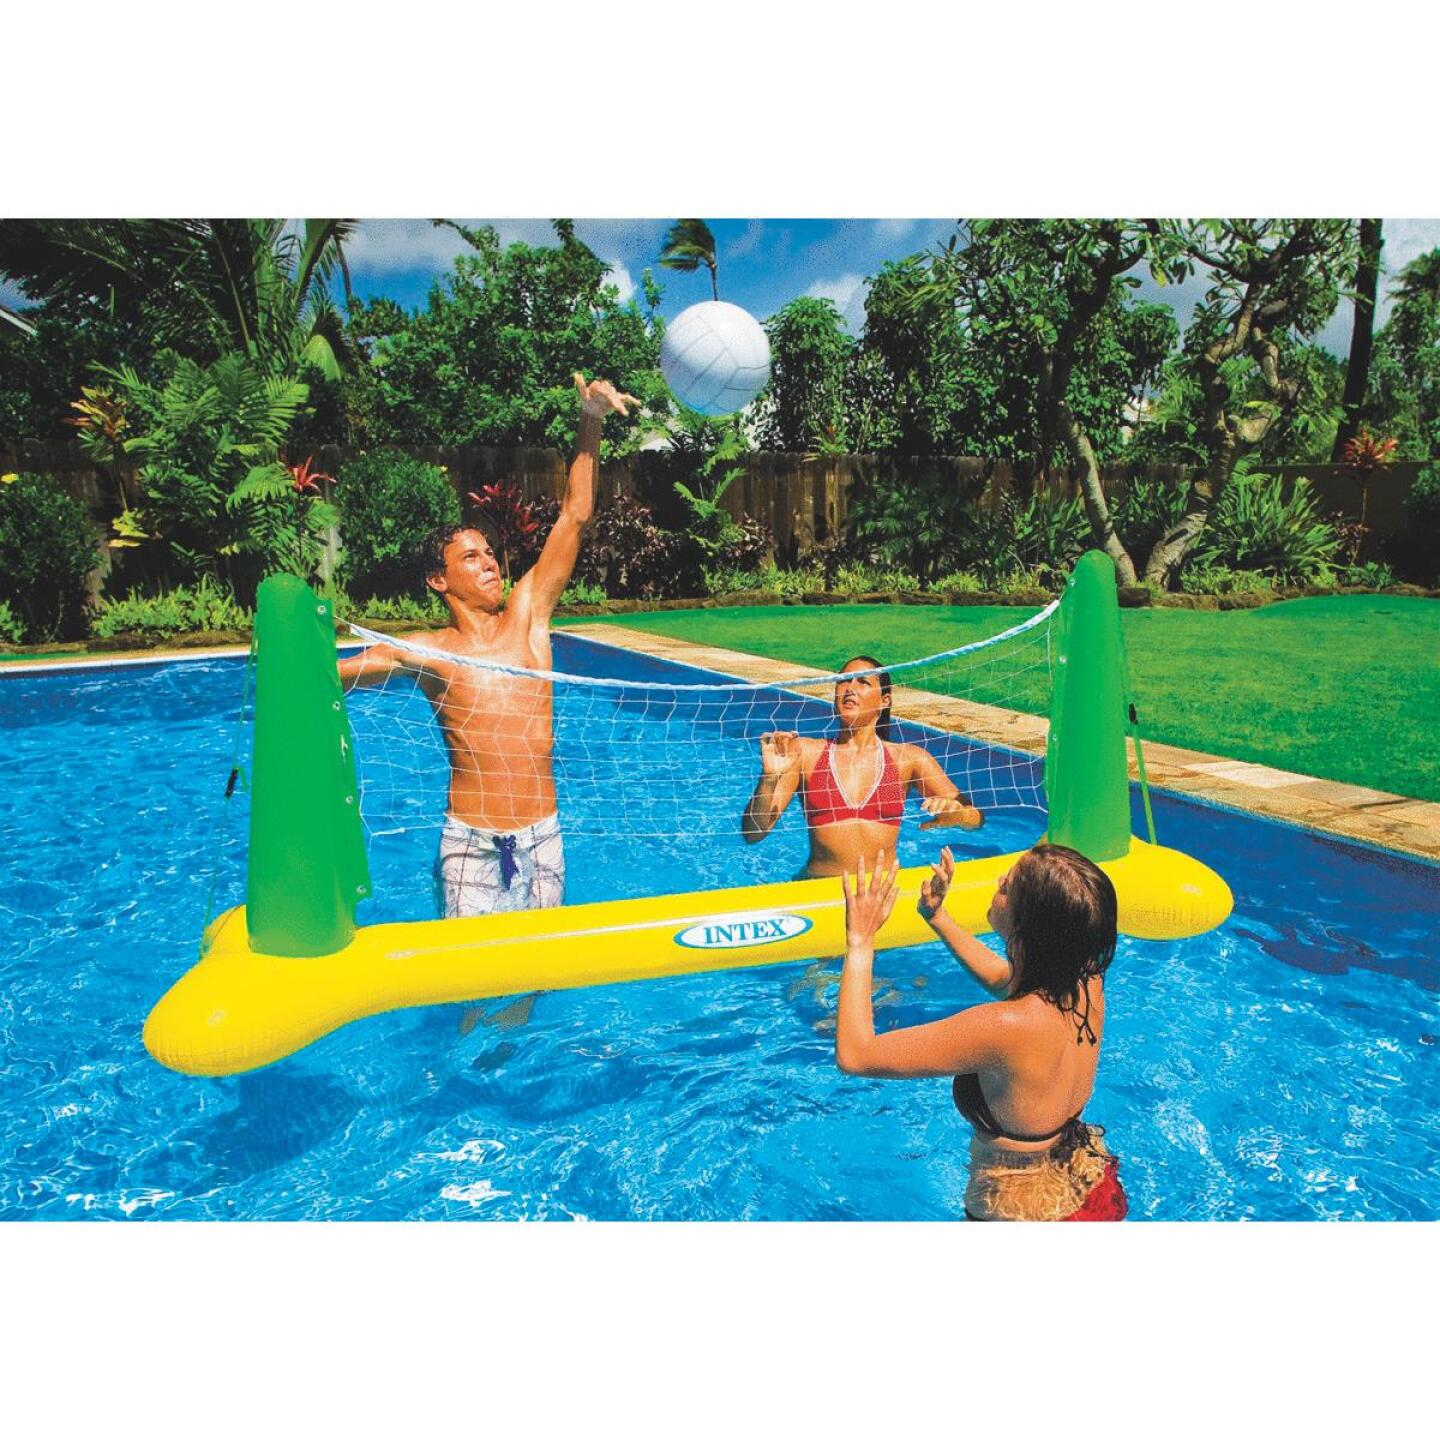 Intex 2 or More Players Inflatable Pool Volleyball Game Image 1